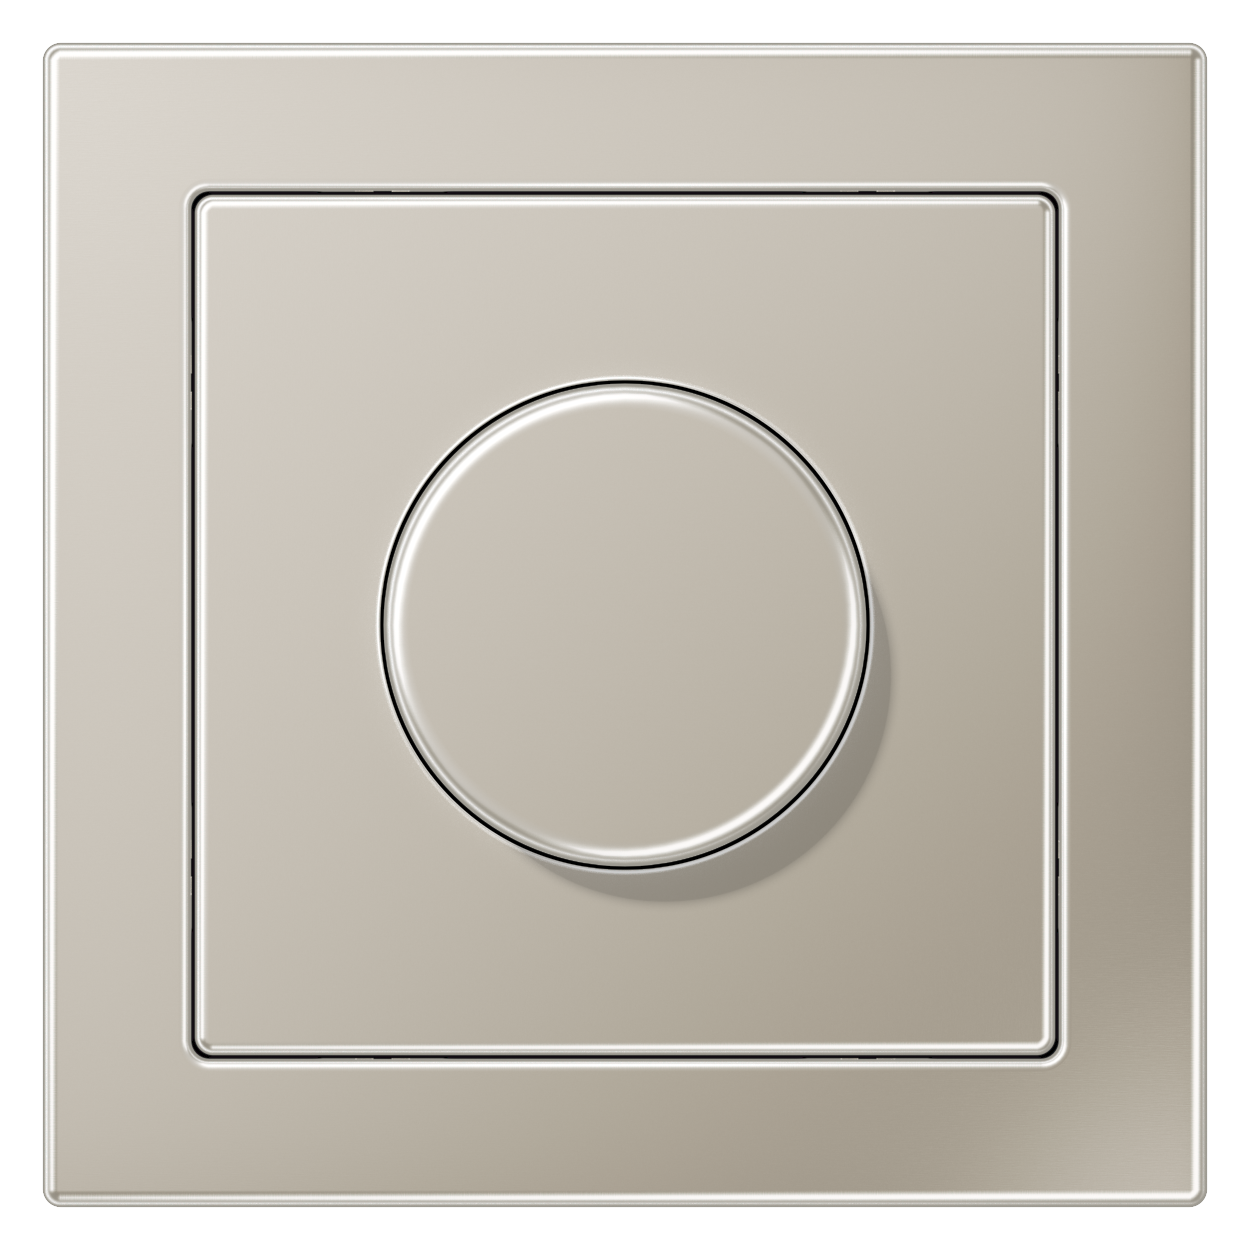 JUNG_LS_Design_stainless_steel_dimmer